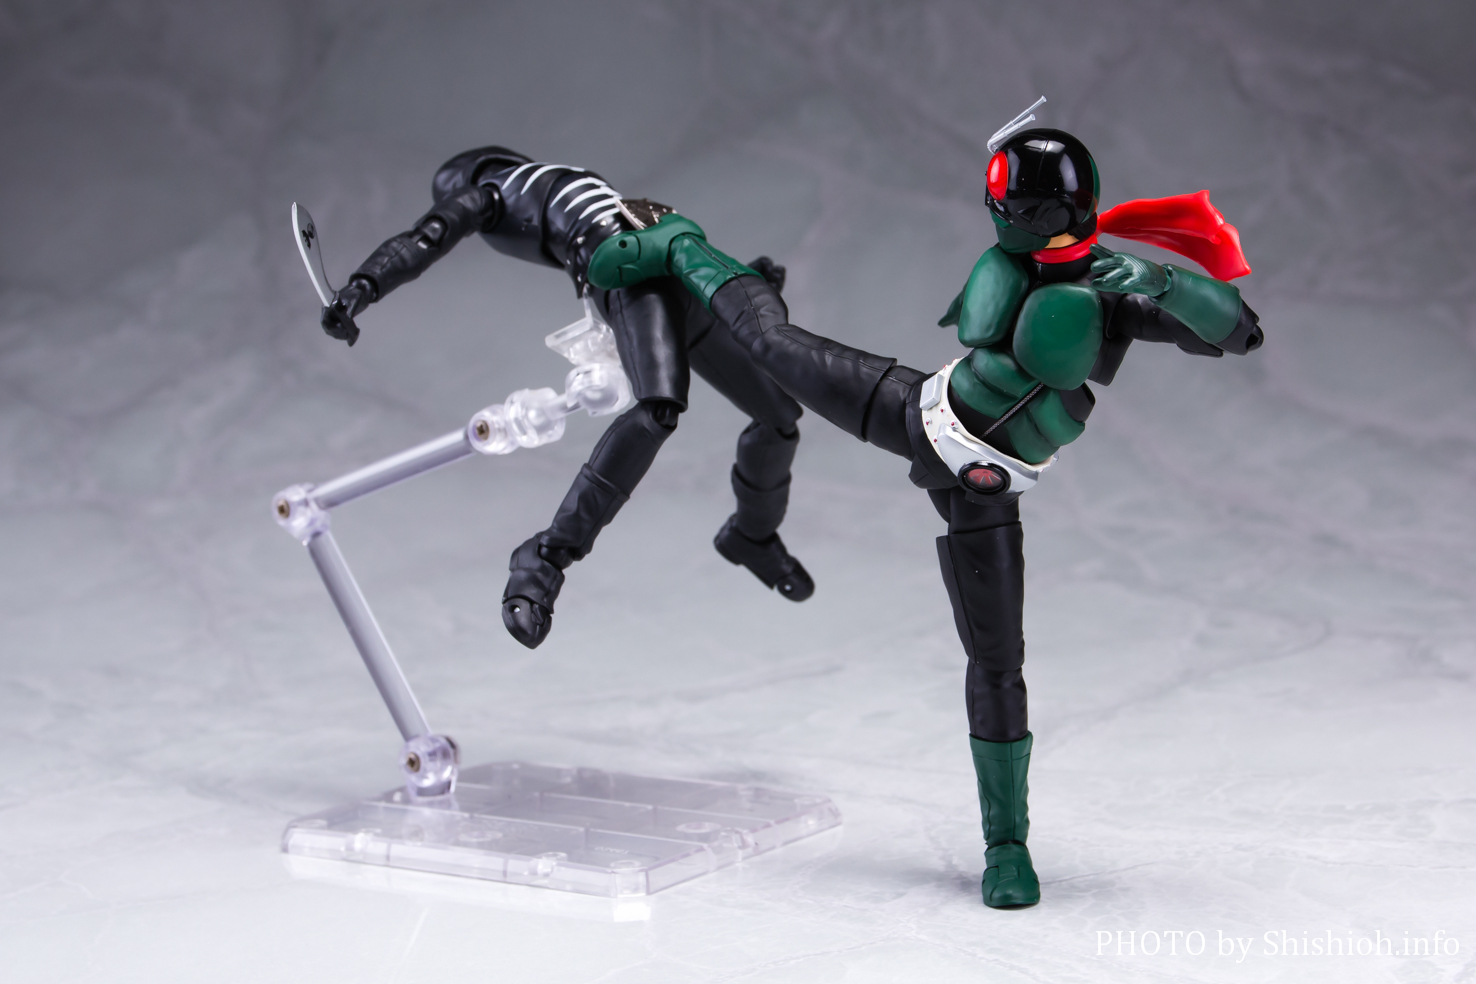 S.H.Figuarts(真骨彫製法) 仮面ライダー1号(桜島Ver.)